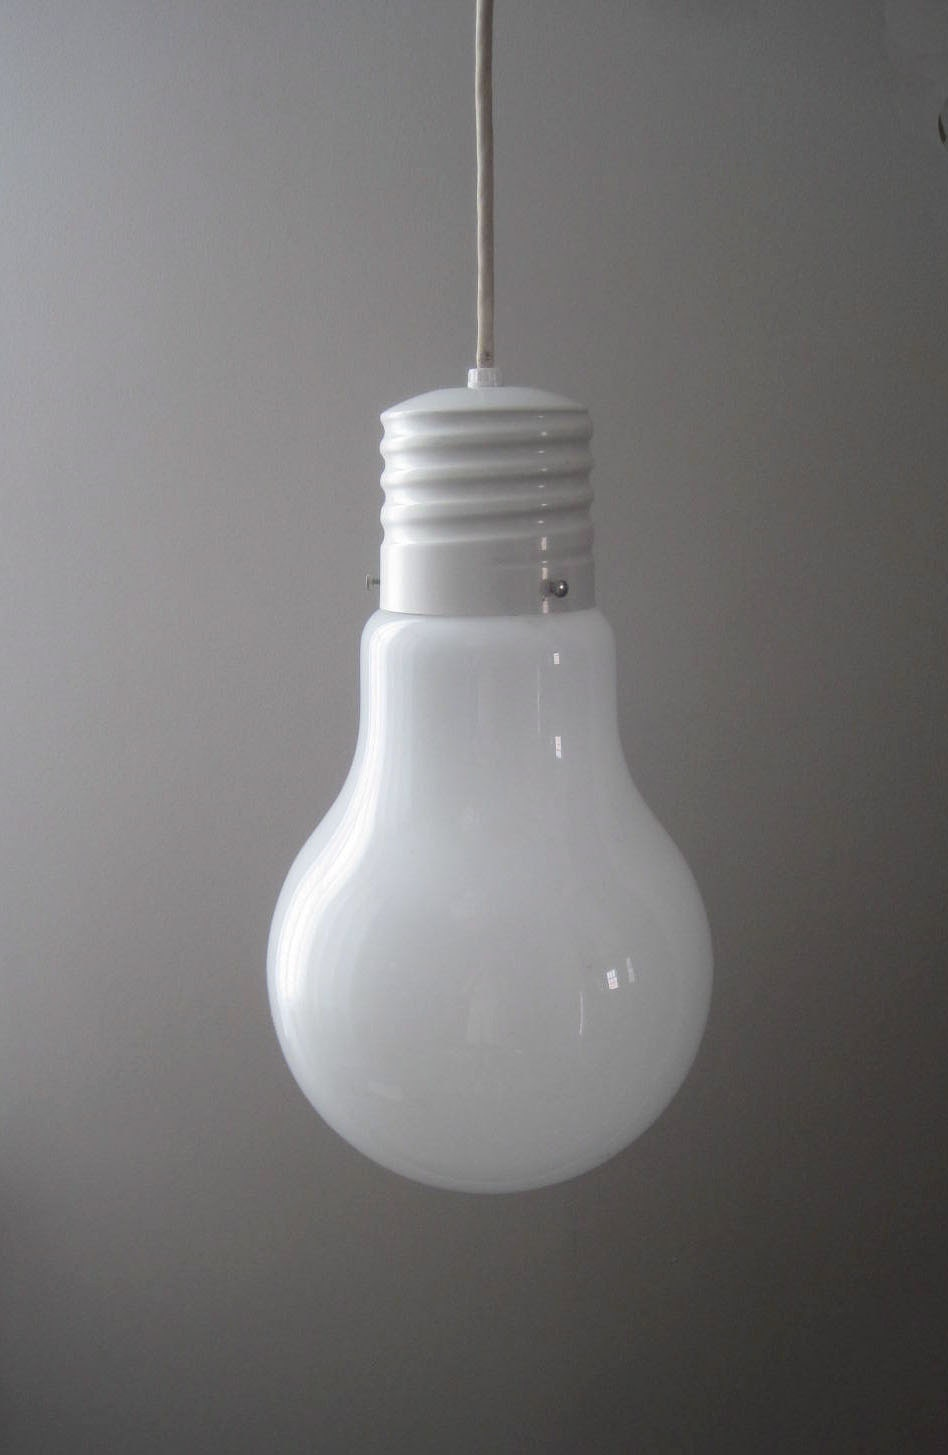 Vintage retro modern giant light bulb hanging lamp Light bulb lamps